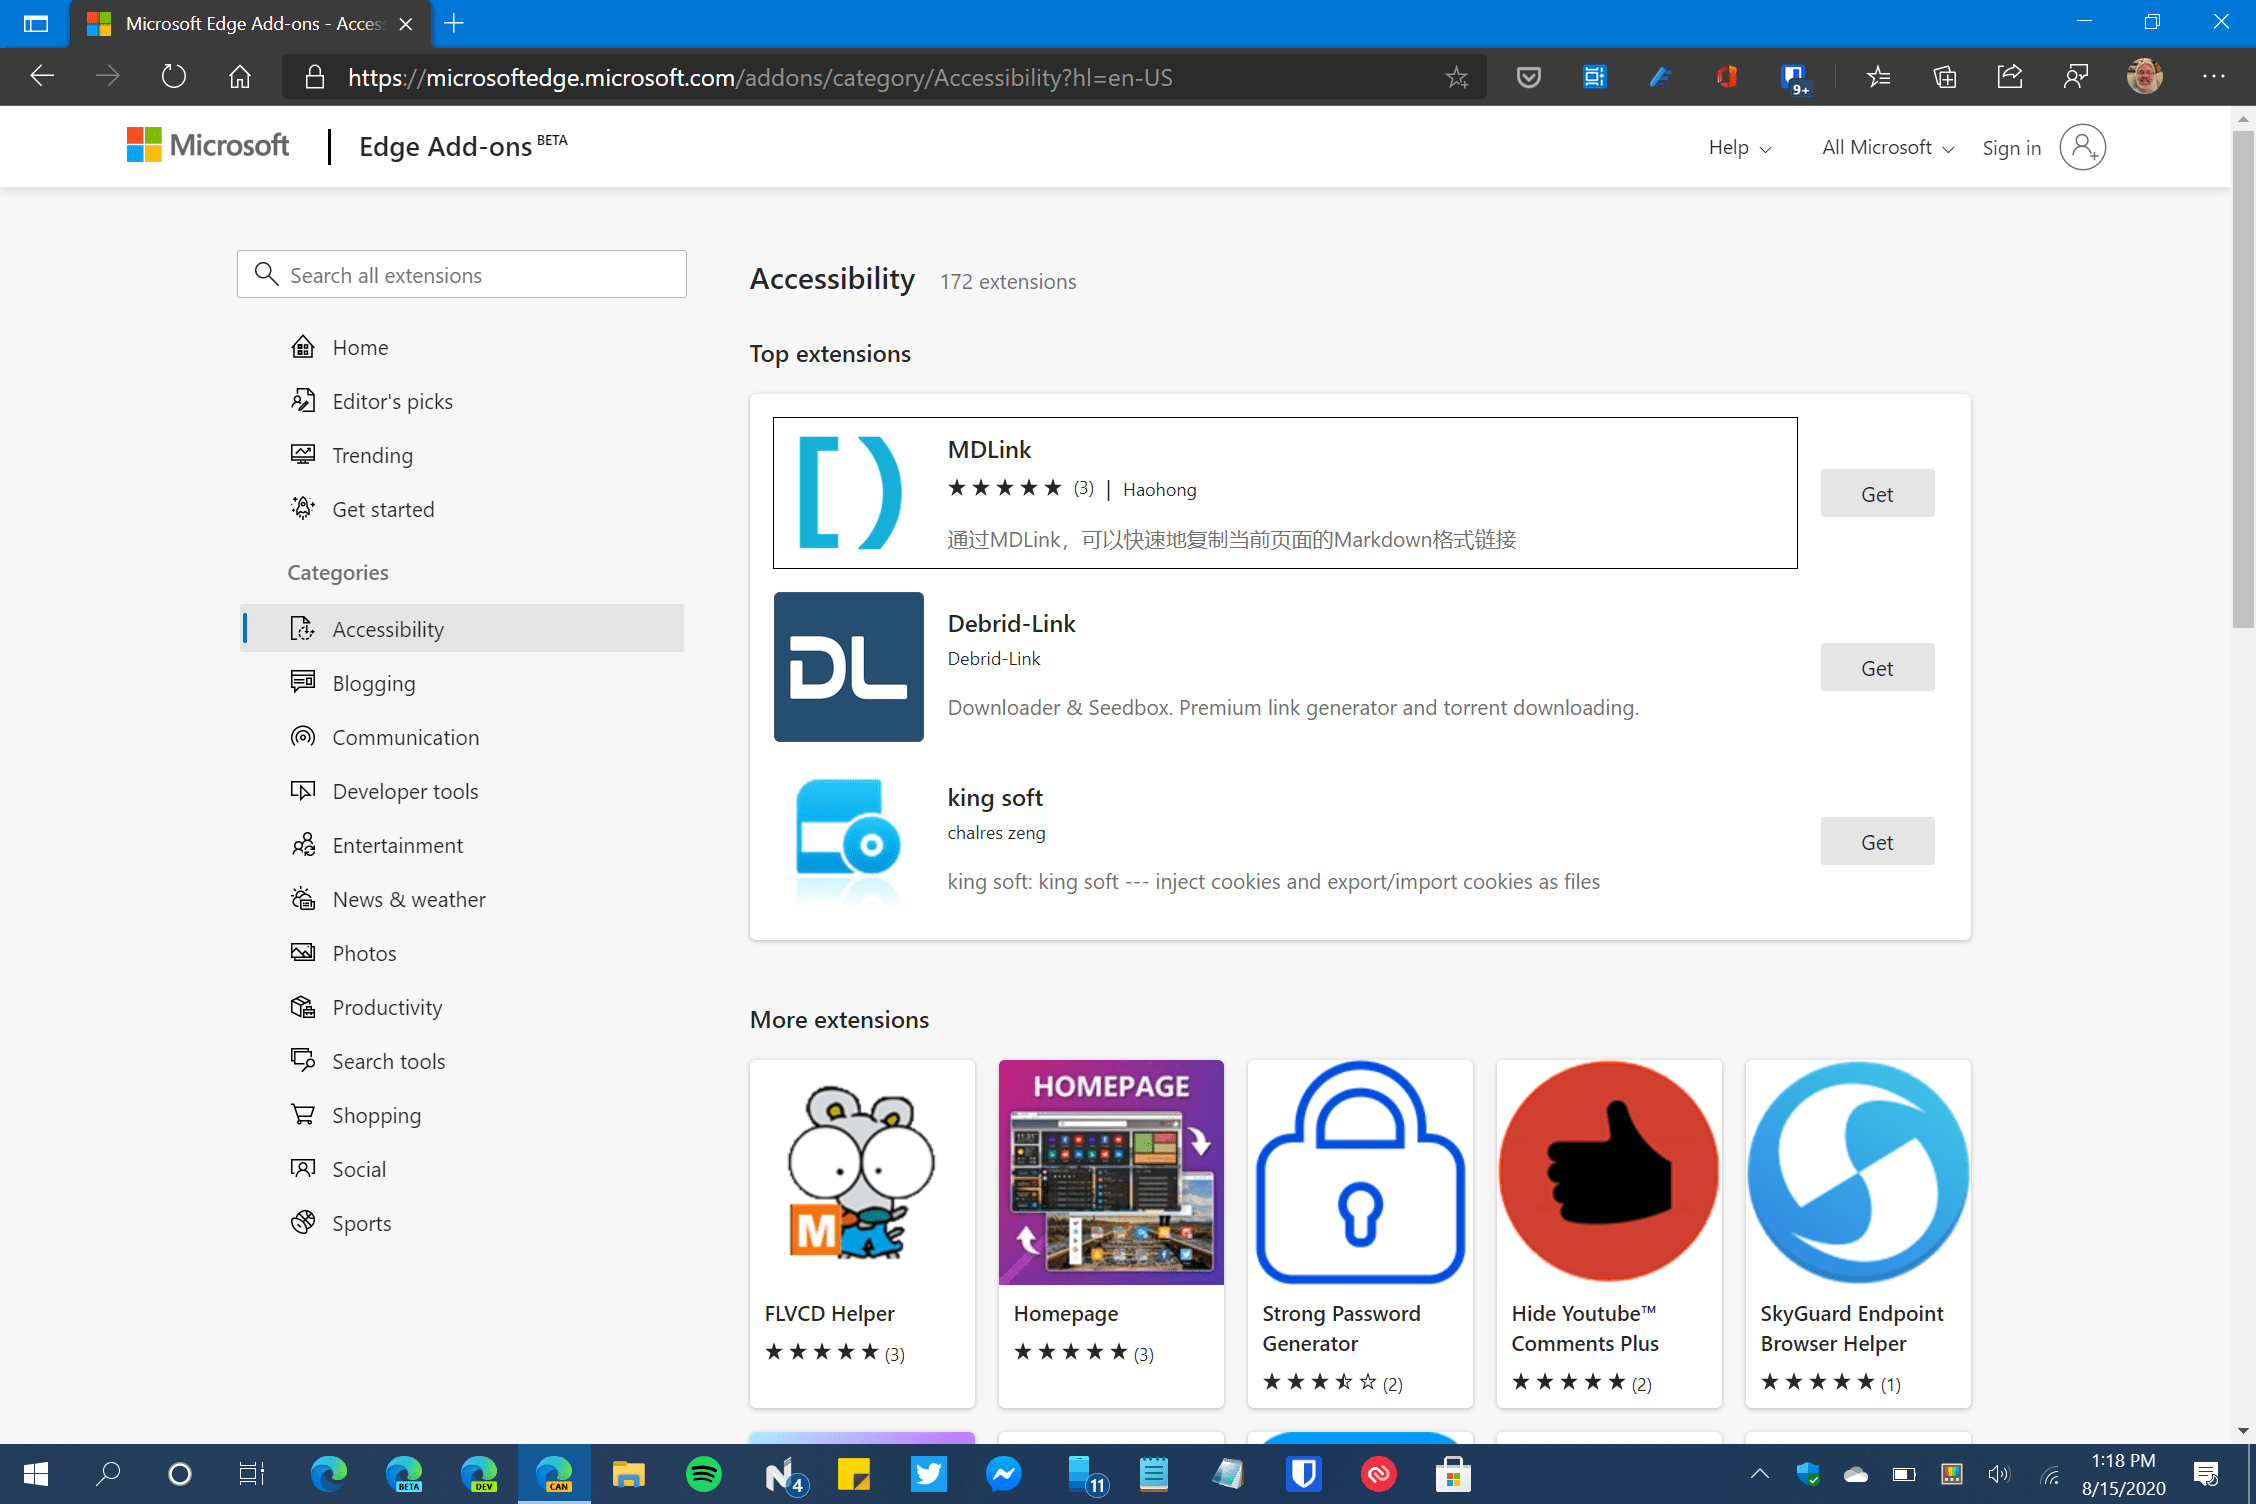 Microsoft Edge Add-ons